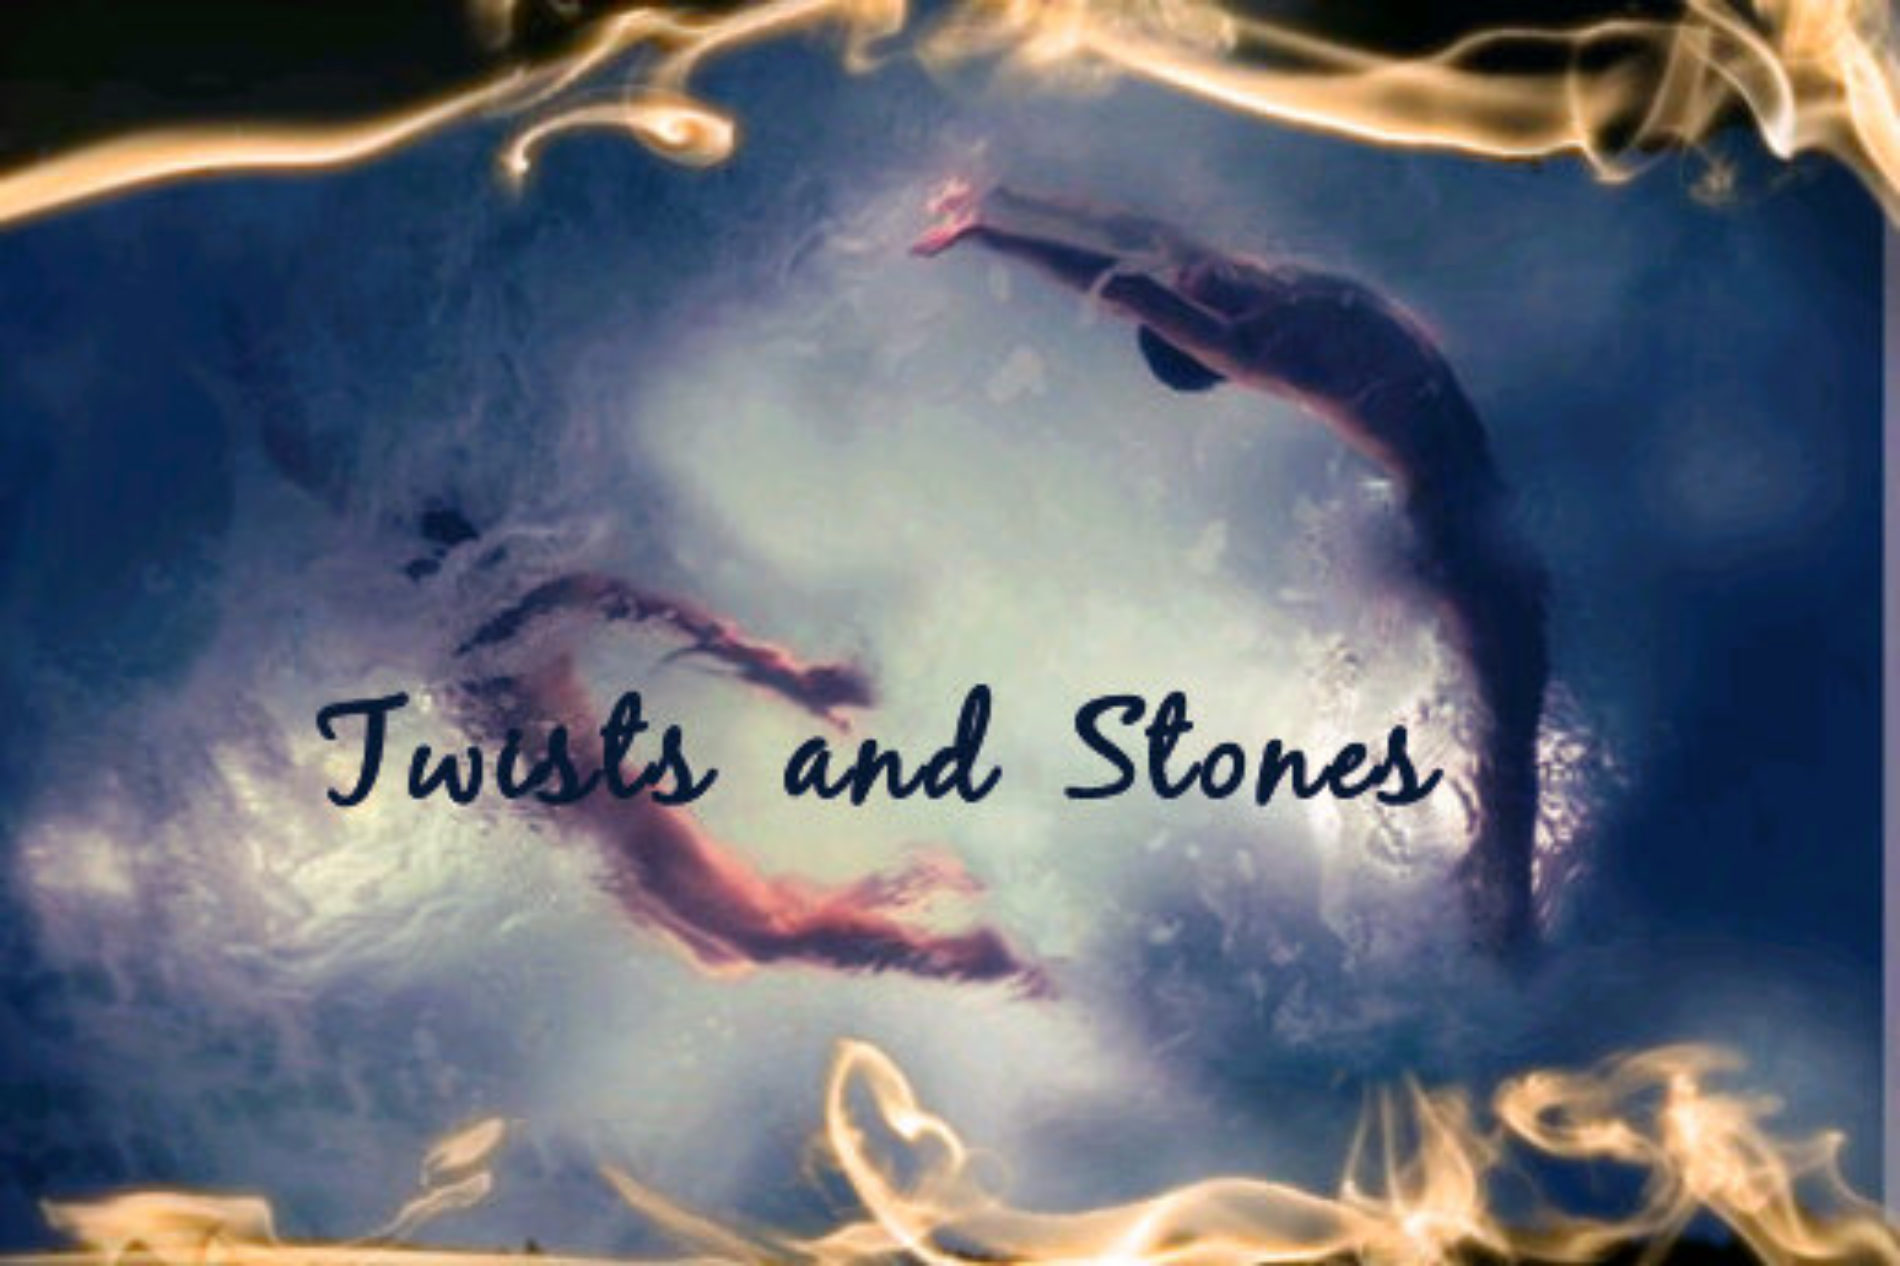 TWISTS AND STONES (Episode 7)